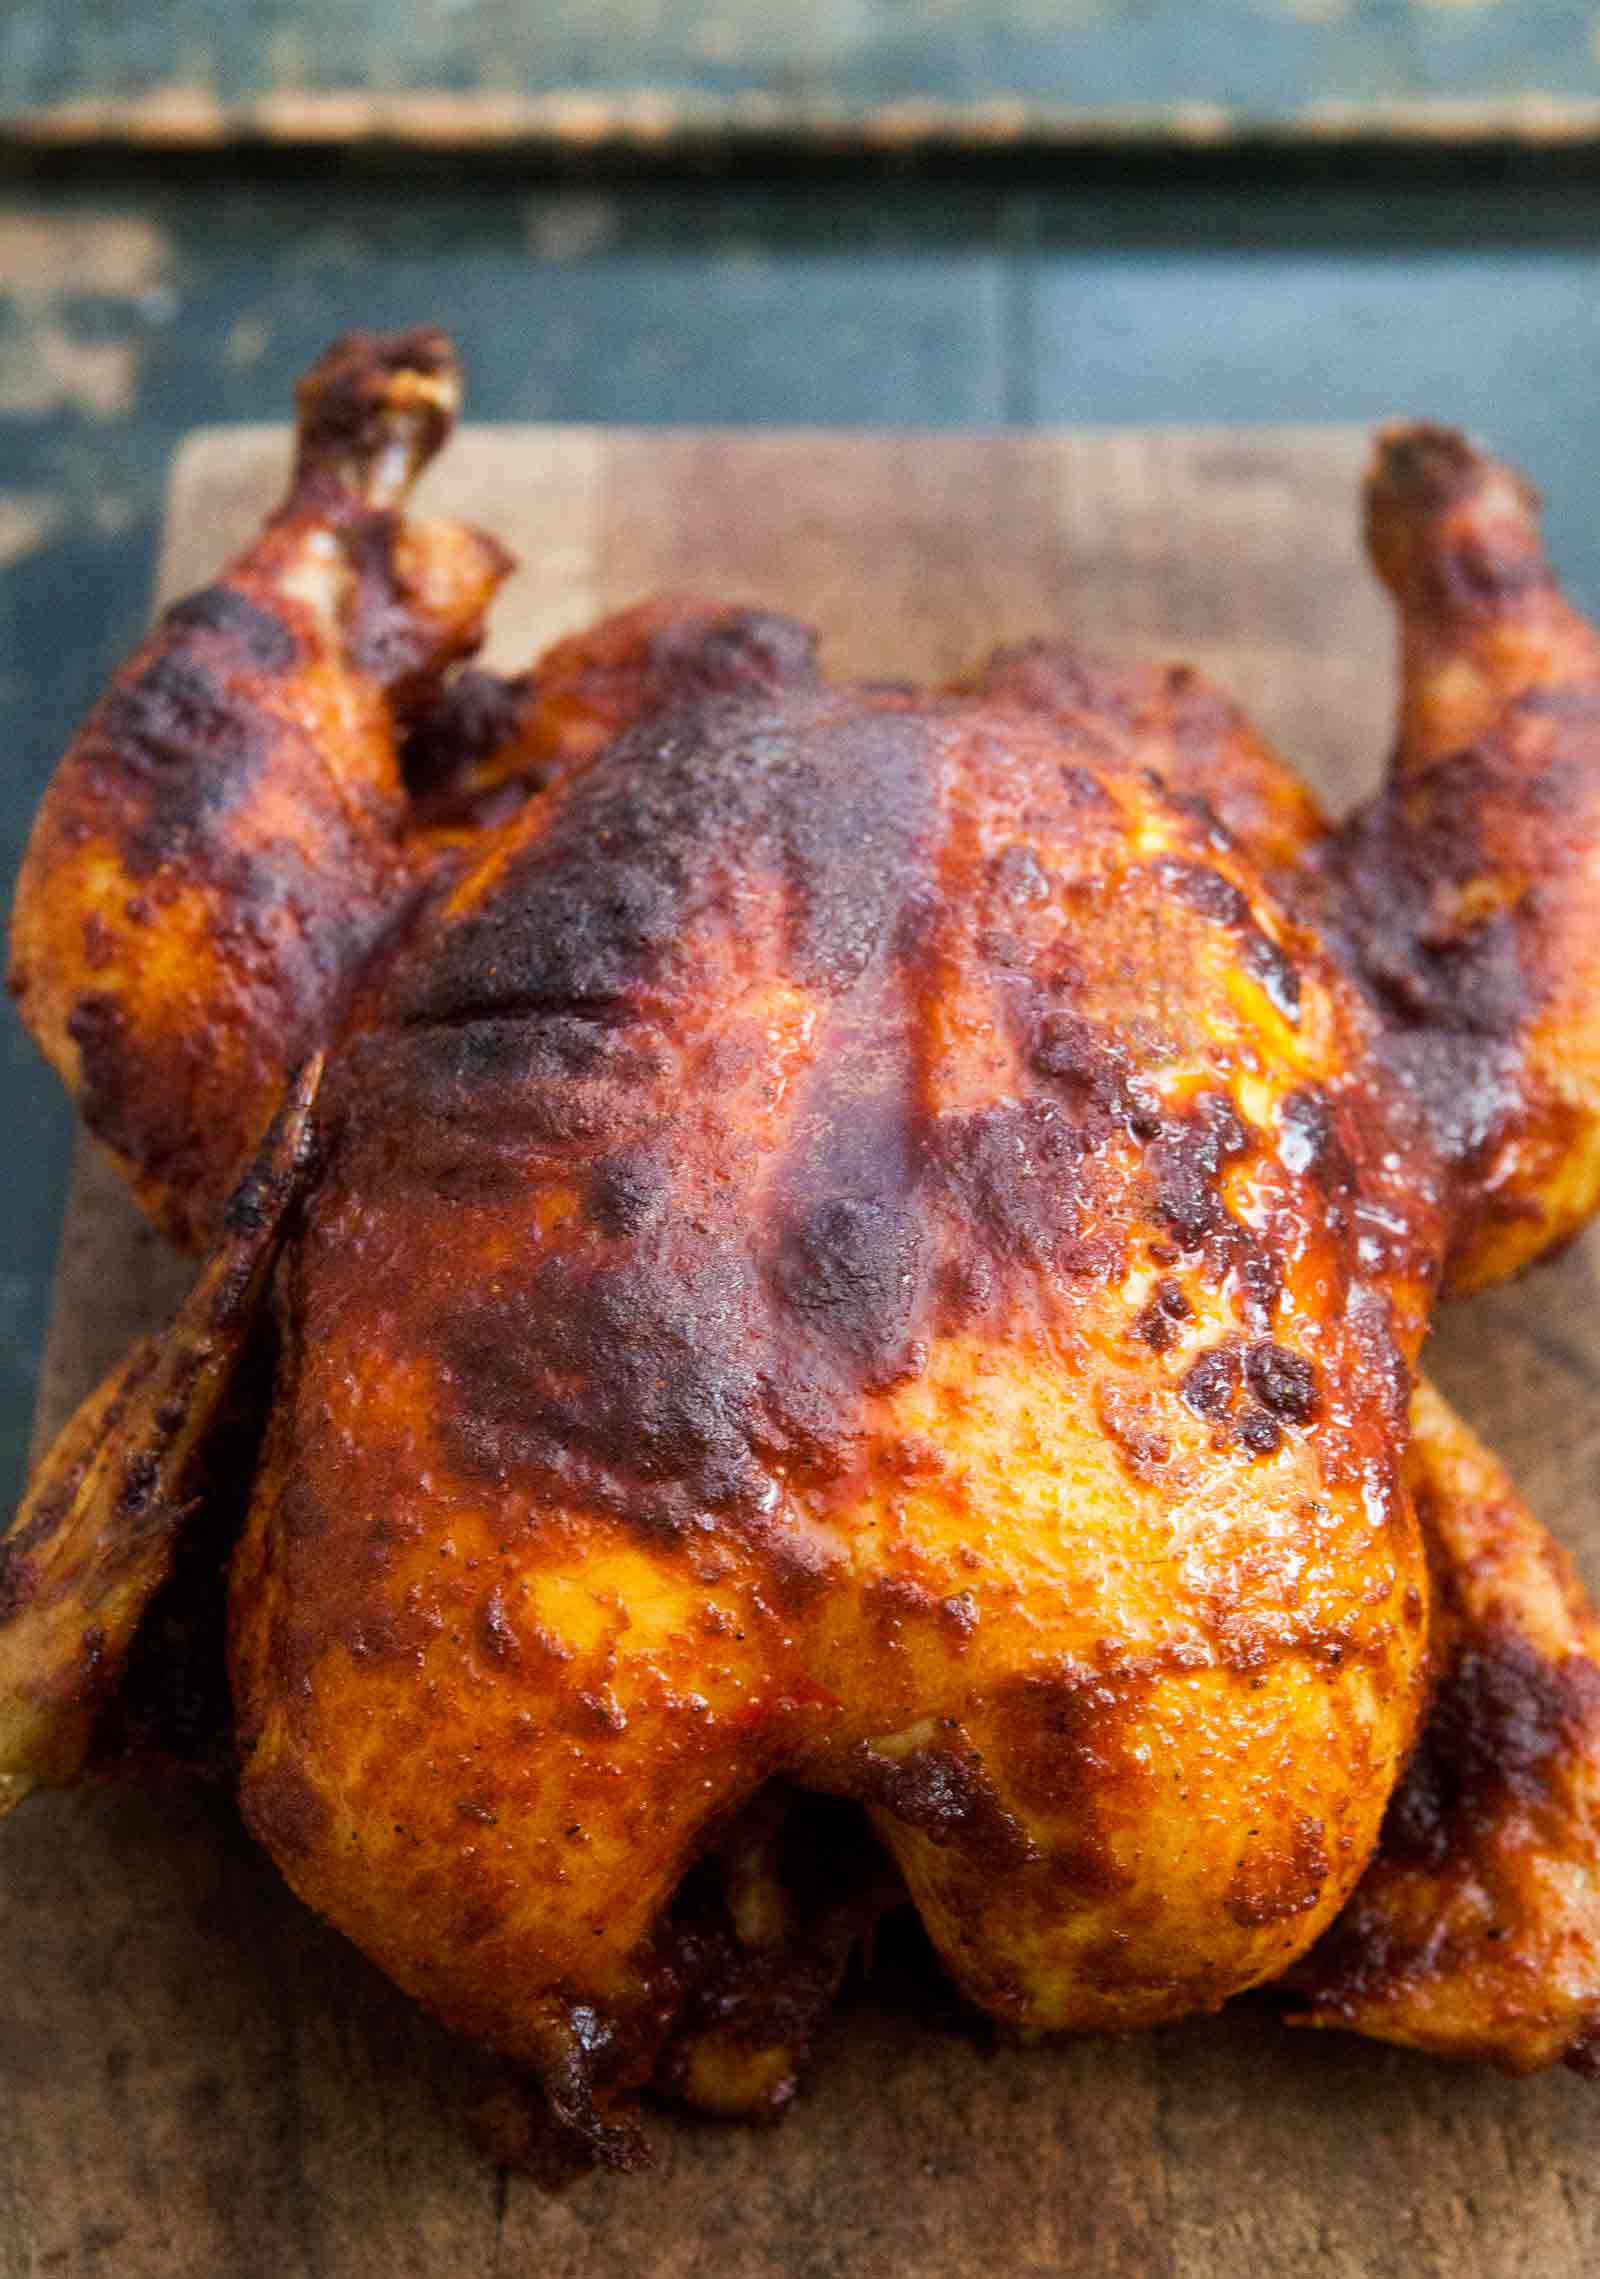 Crockpot chickenw ith home blended smoked BBQ chicken rub